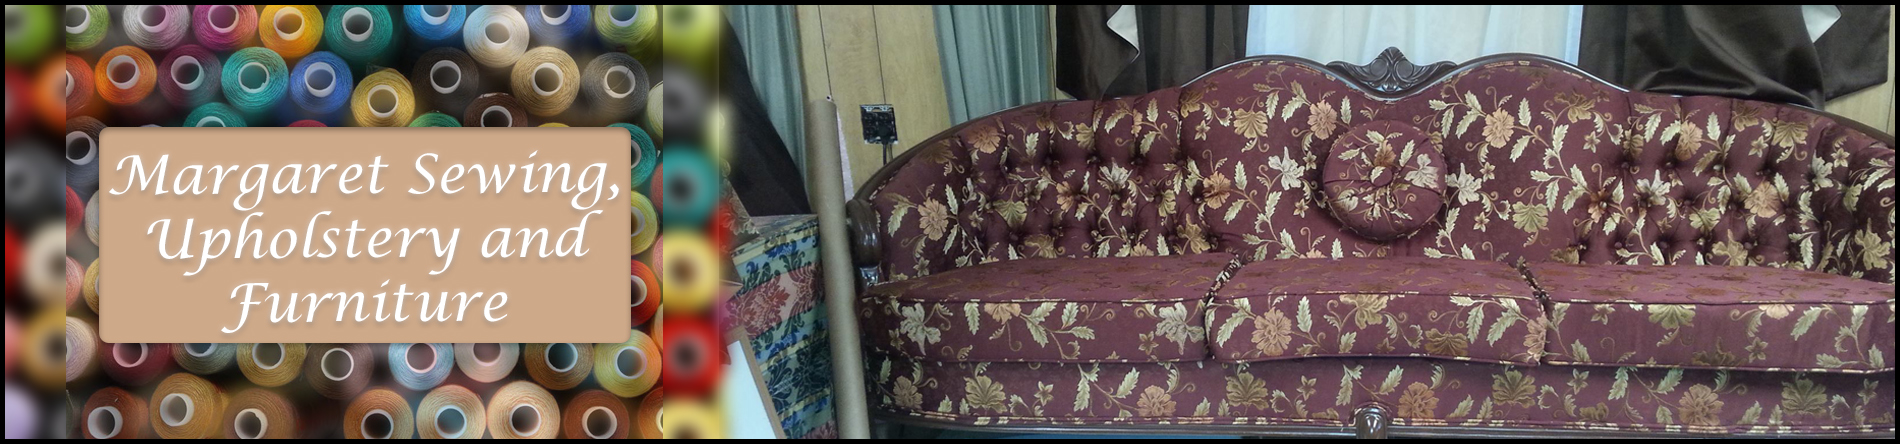 Margaret Sewing, Upholstery And Furniture Is An Upholstery Shop In  Brockton, MA